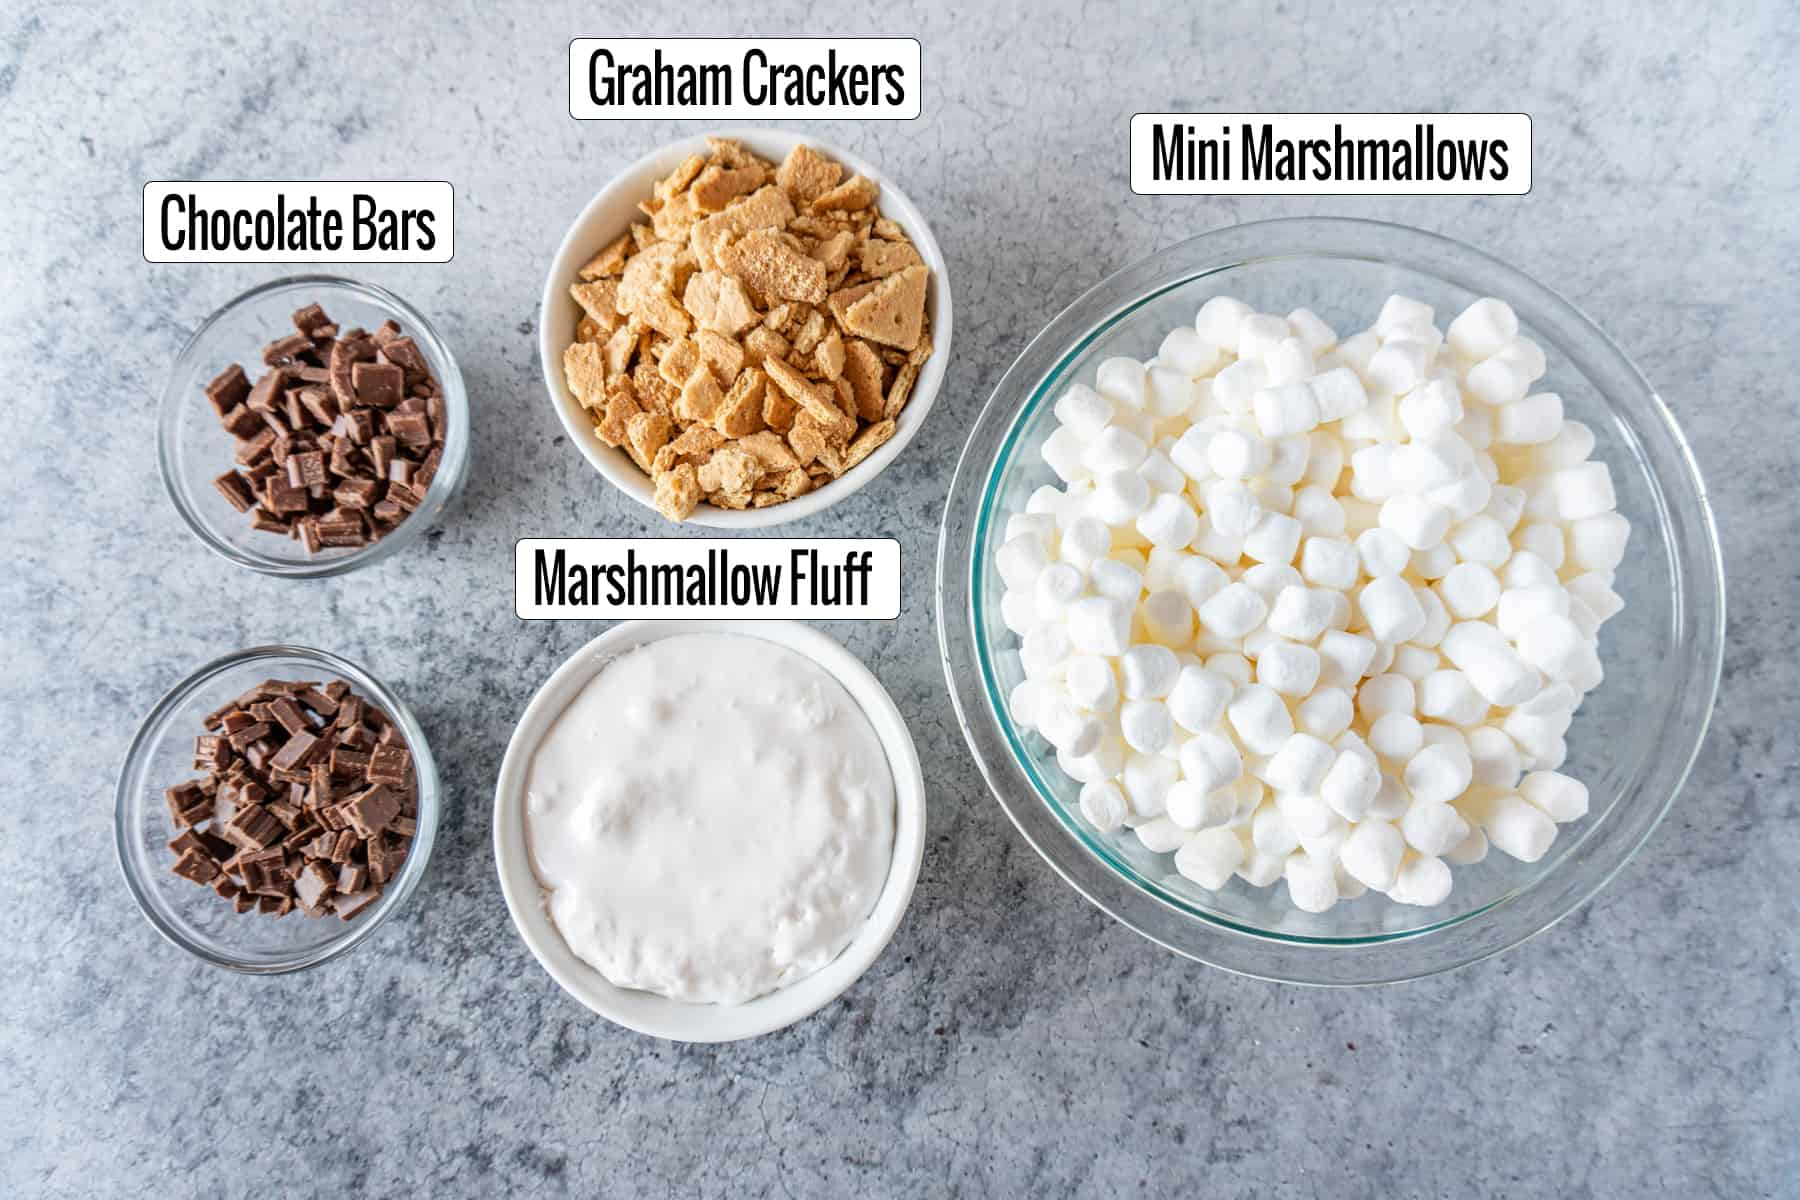 ingredients in bowls: Chocolate pieces, crushed graham crackers, marshmallow fluff, and mini marshmallows